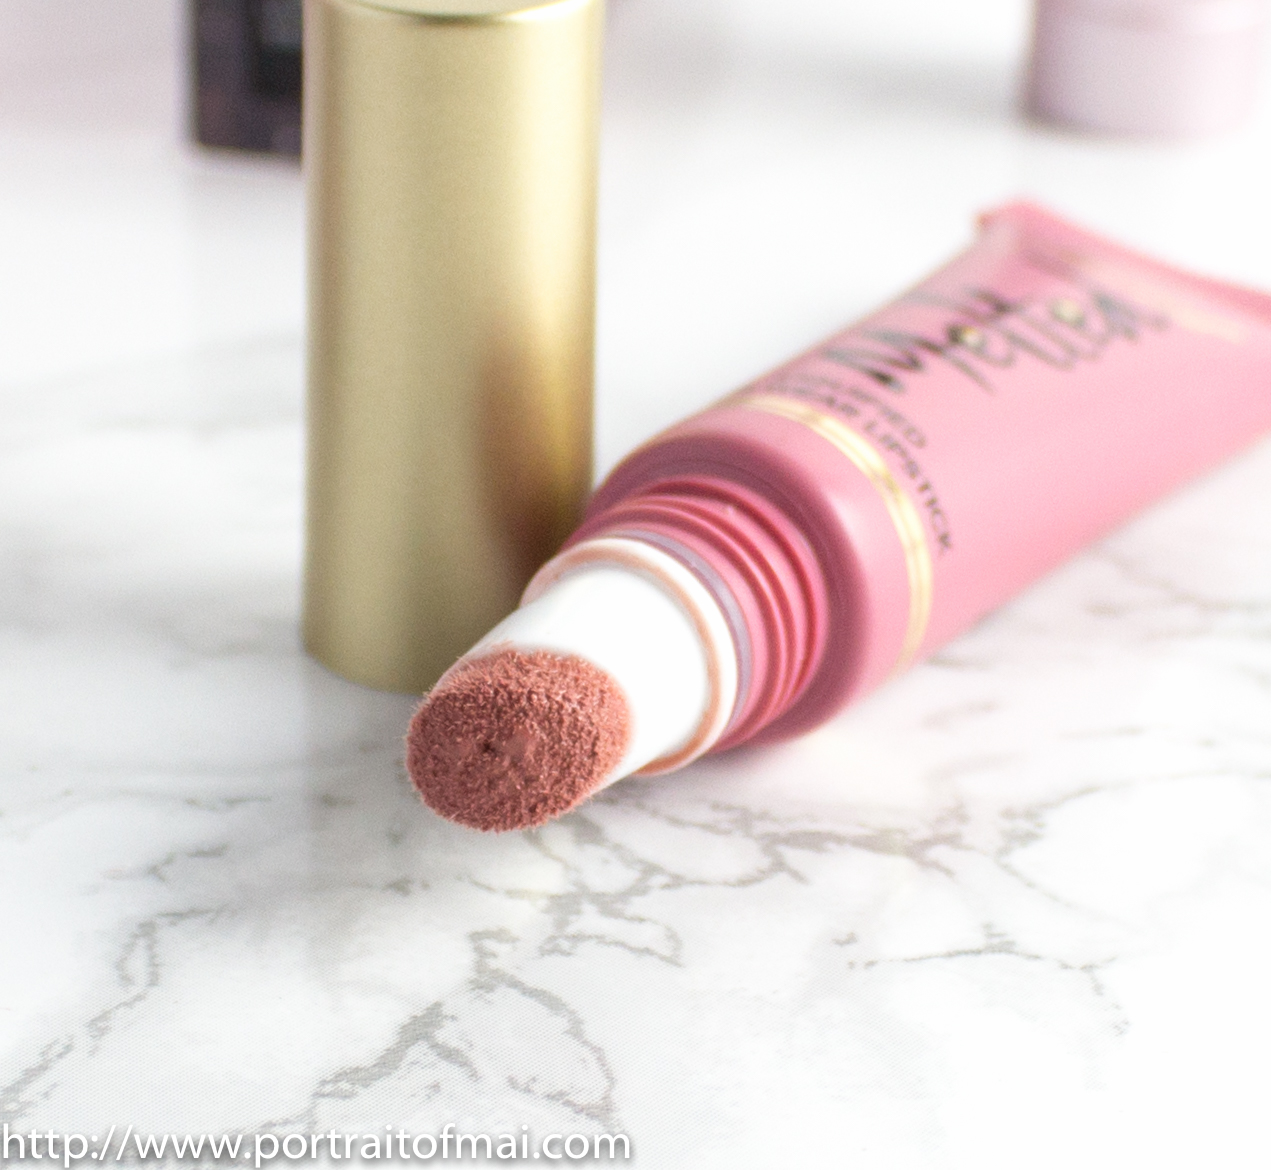 Too Faced Melted Liquified Long Wear Lipstick in Melted Chihuahua